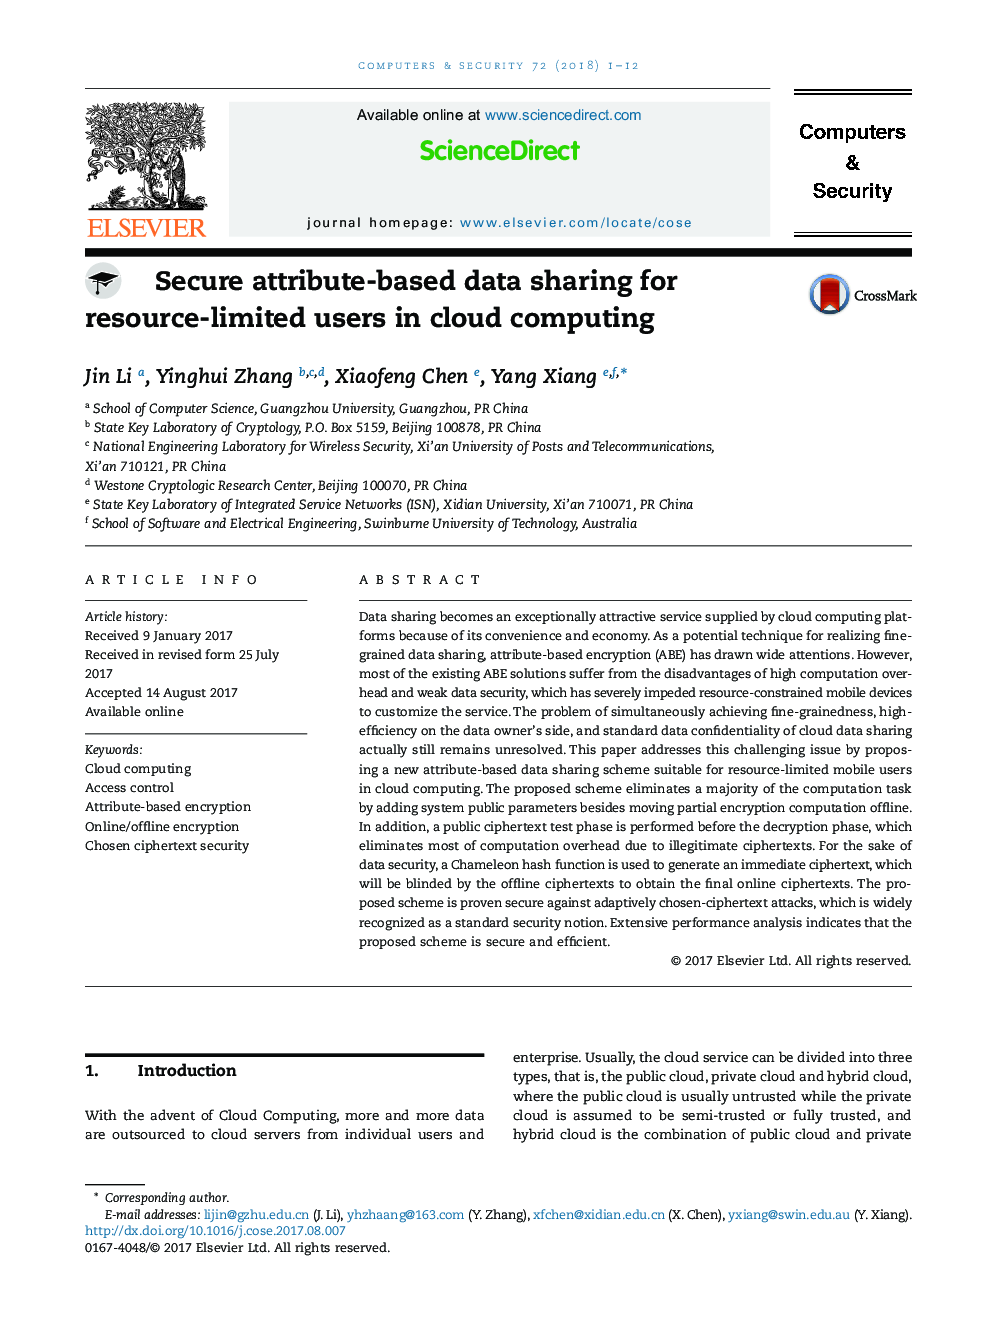 Secure attribute-based data sharing for resource-limited users in cloud computing